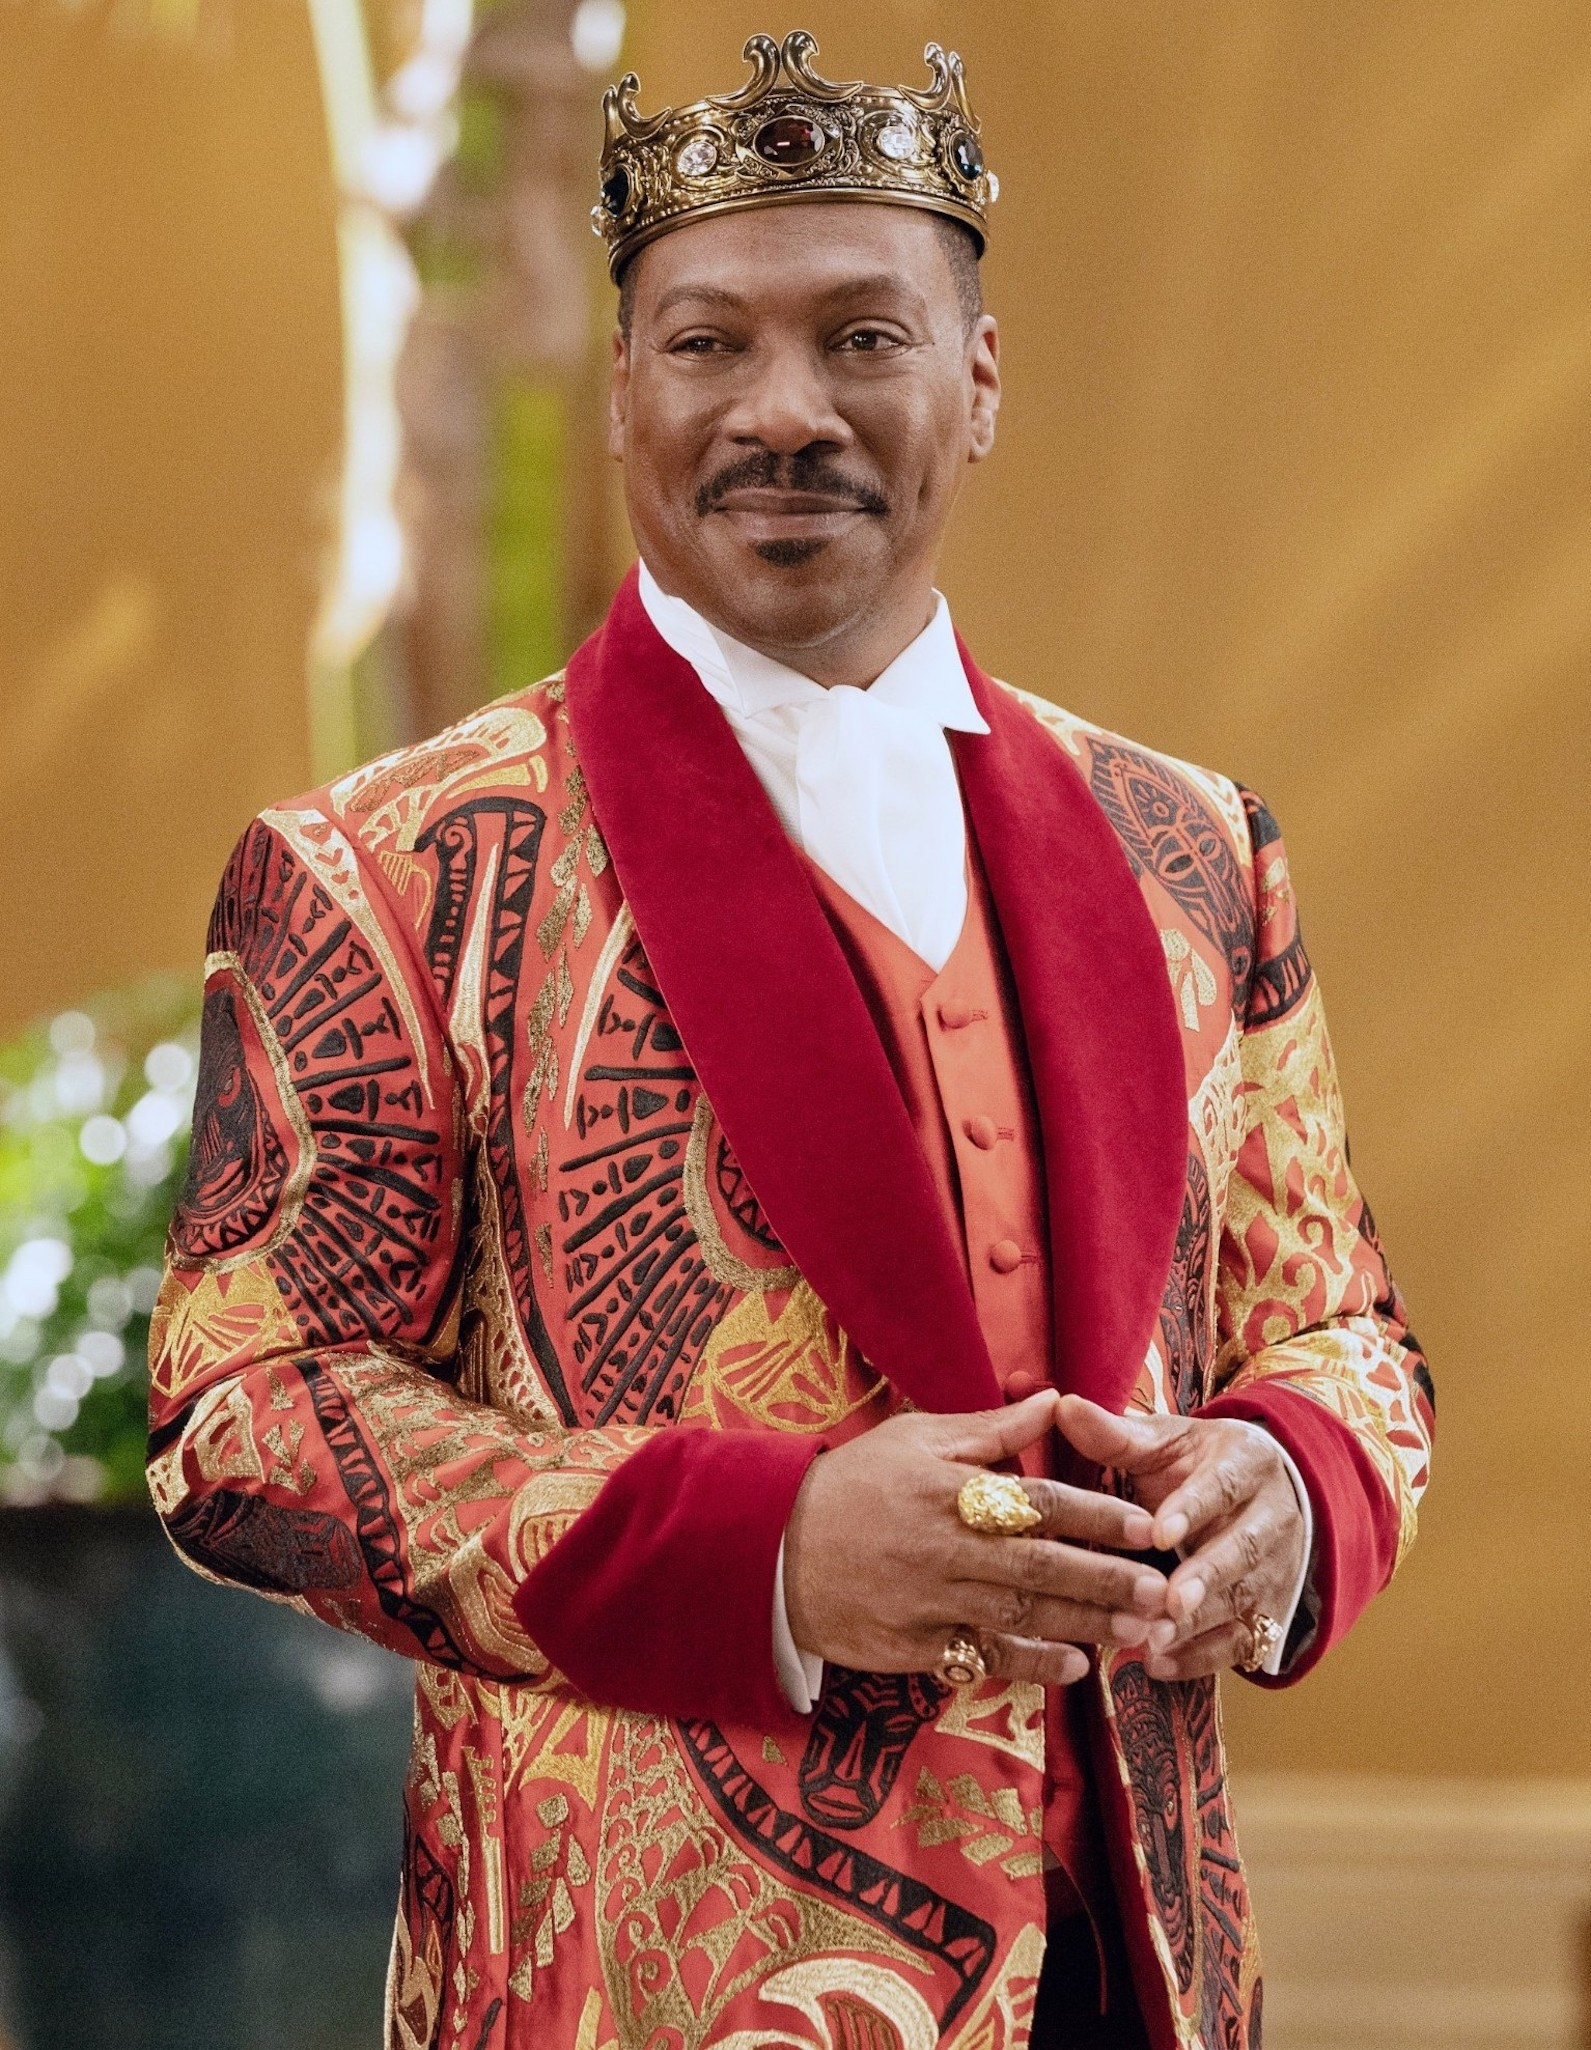 Eddie Murphy wearing a colorful blazer, a crown, and rings